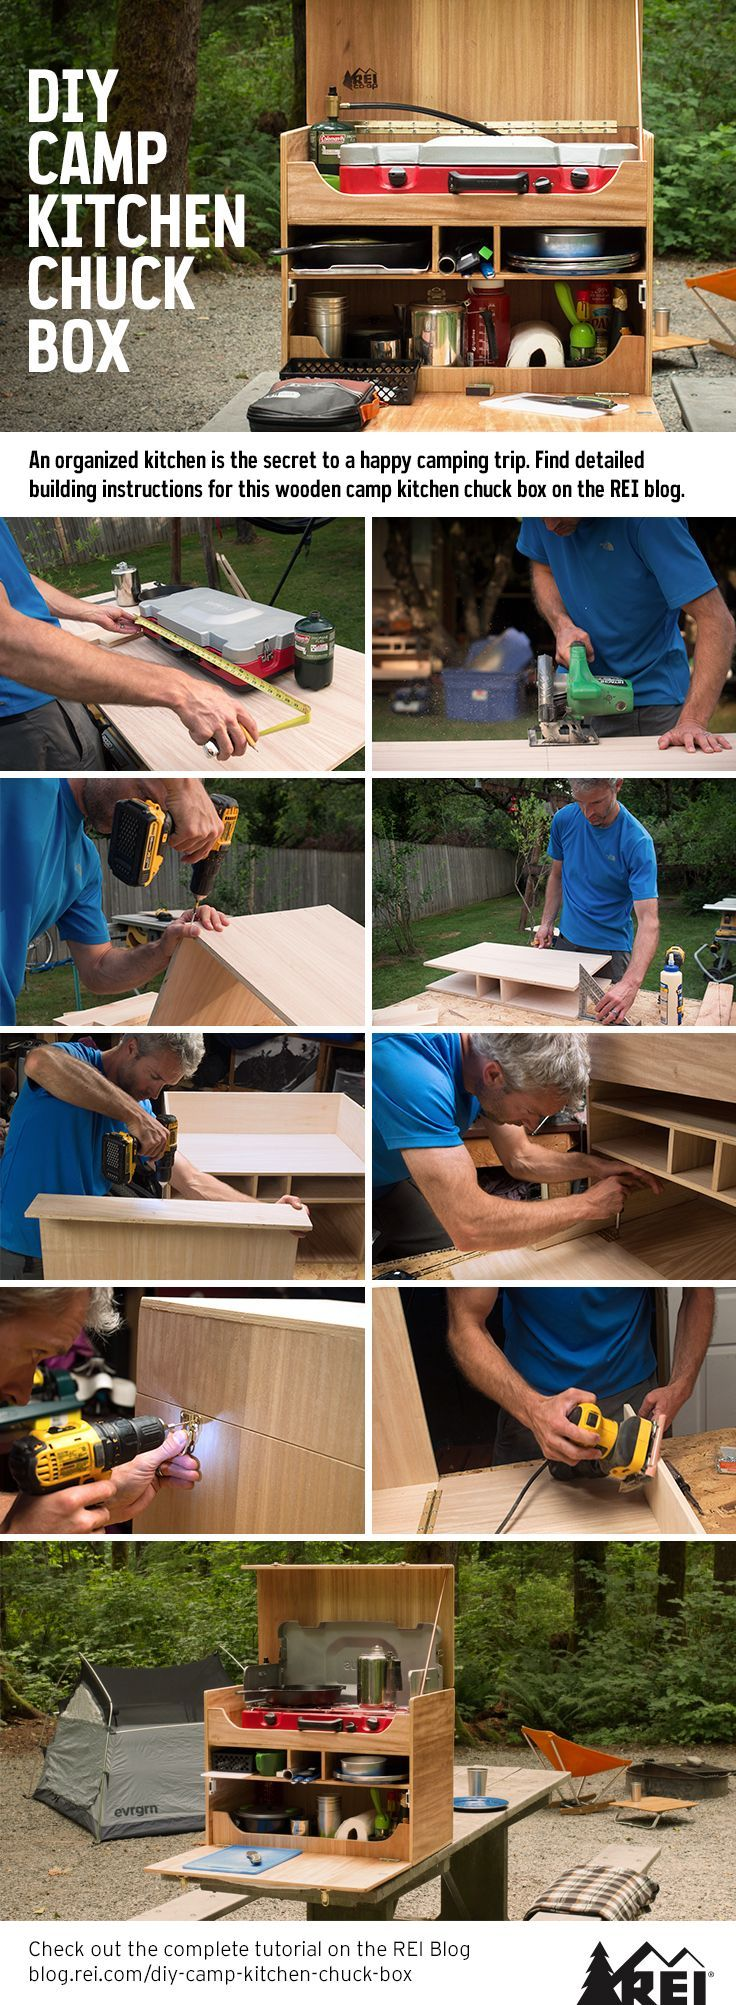 How To Build Your Own Camp Kitchen Chuck Box